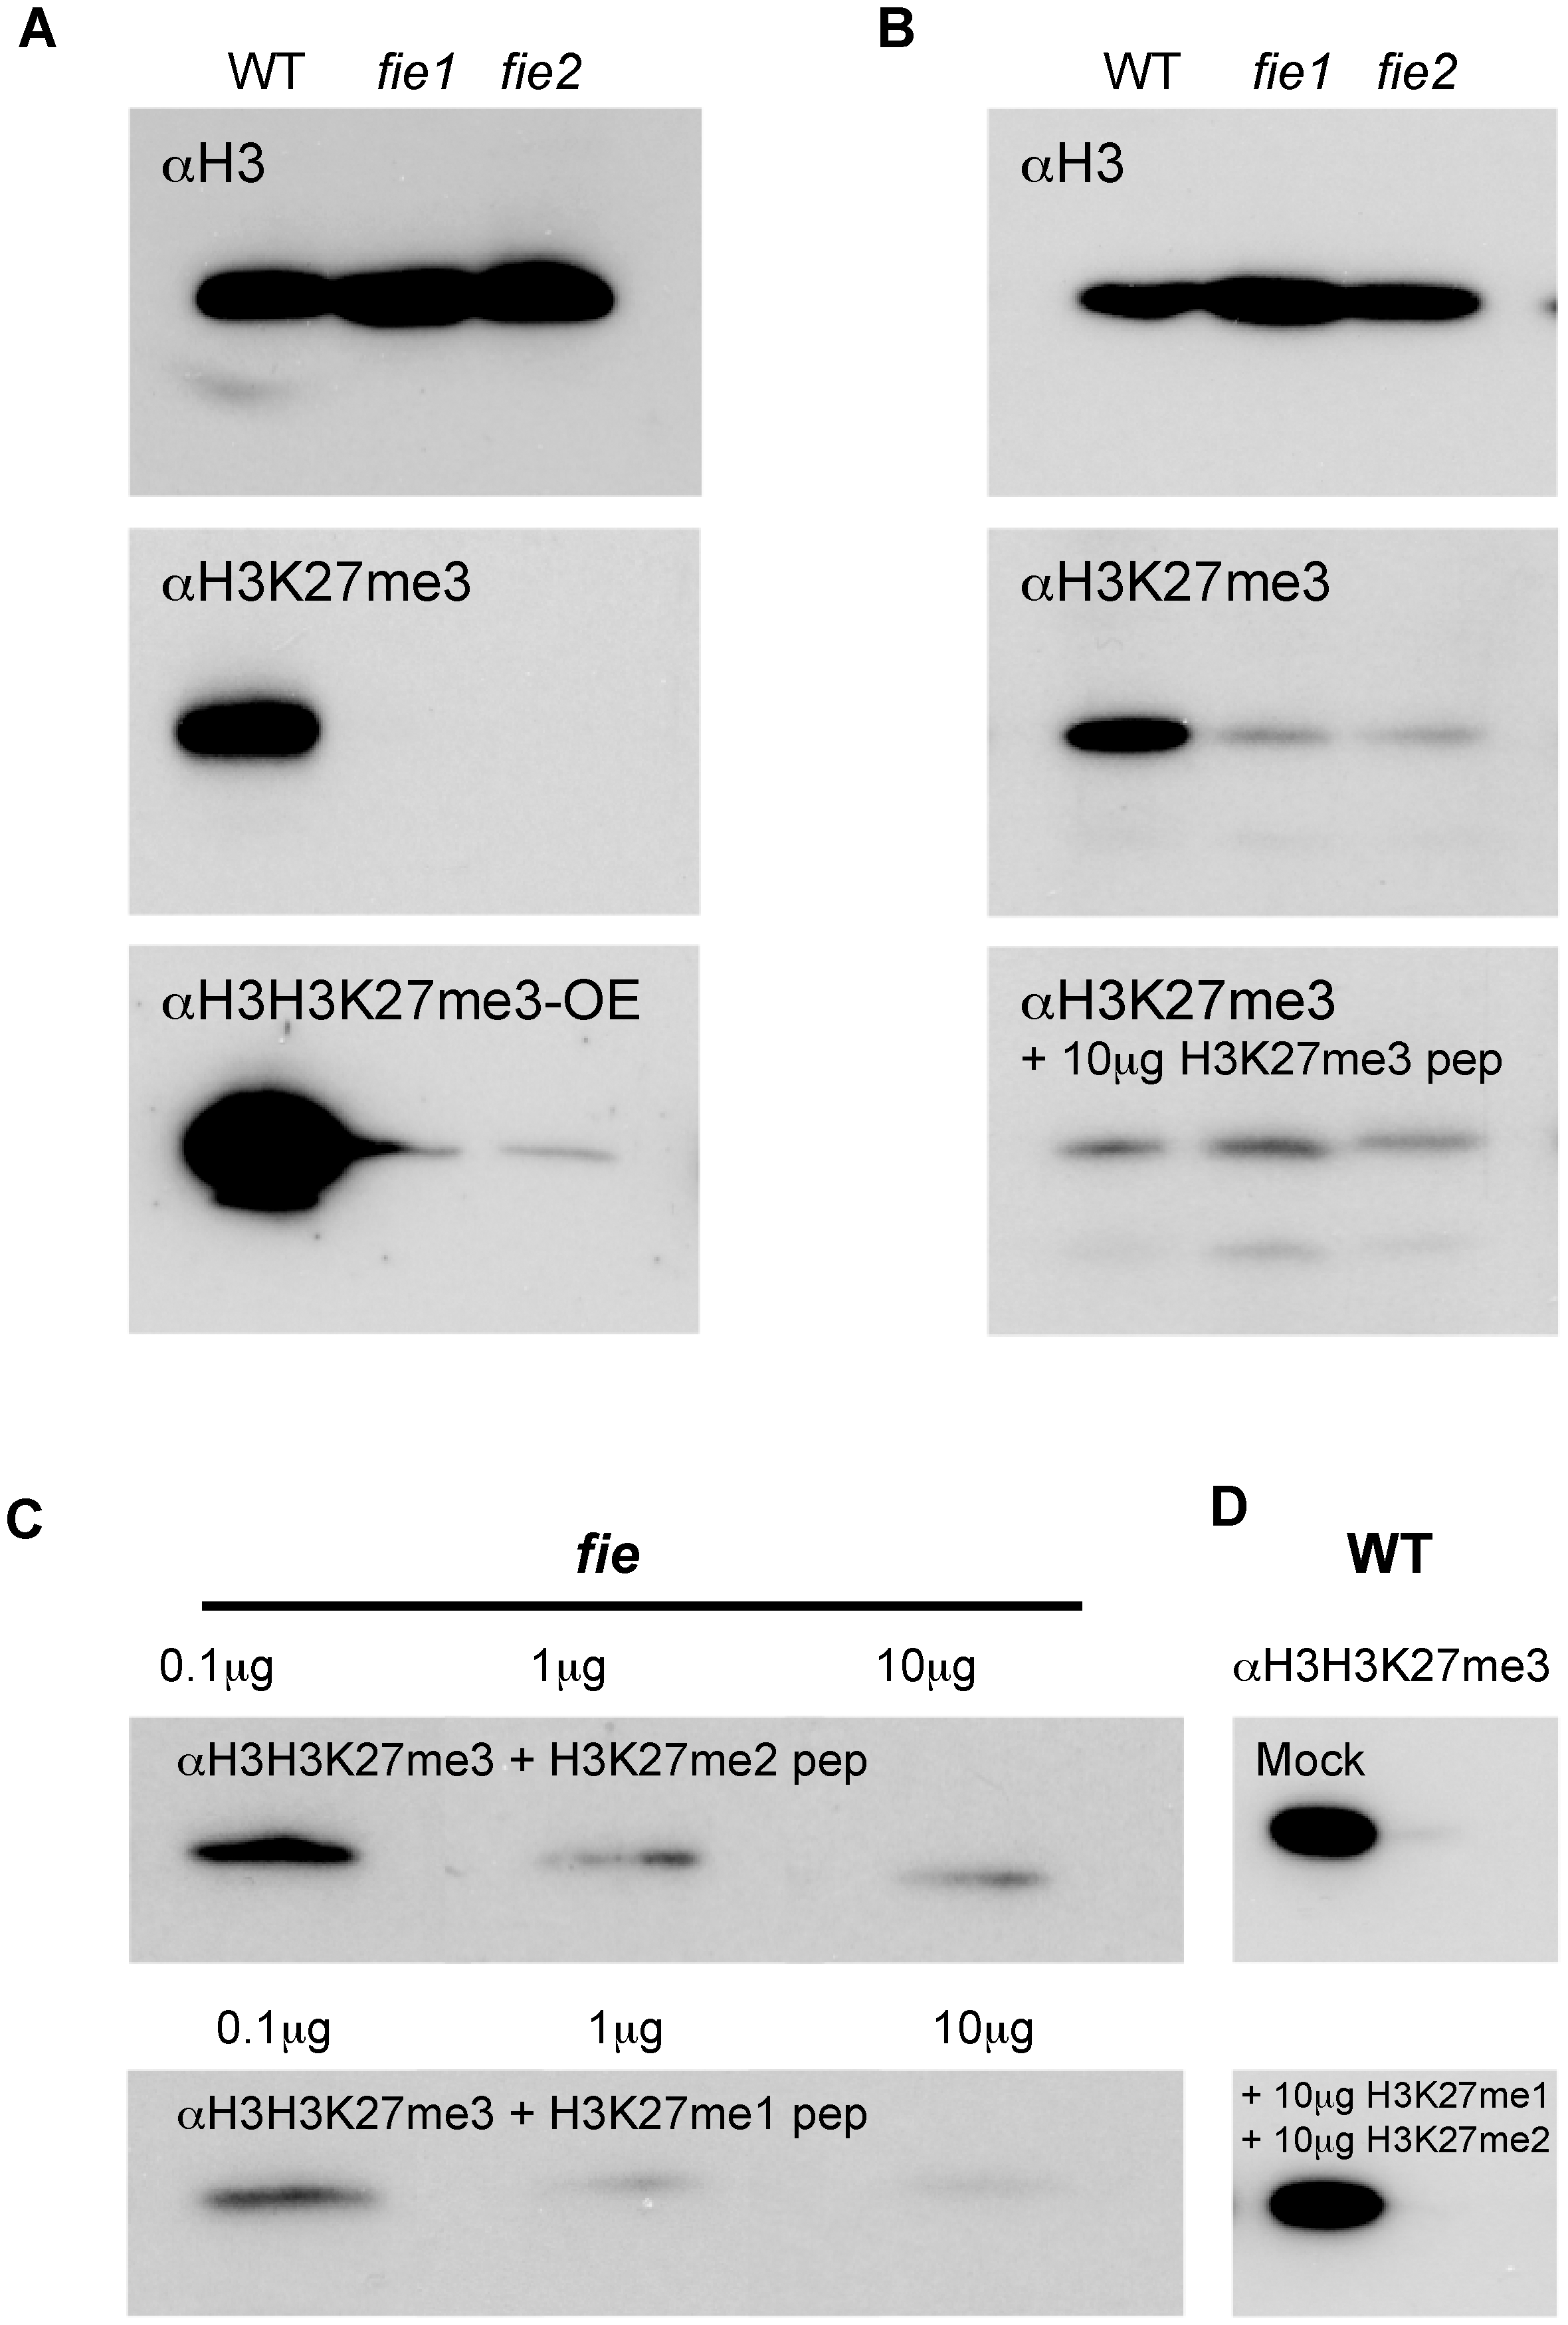 Western blot detection of the H3K27me3 mark.